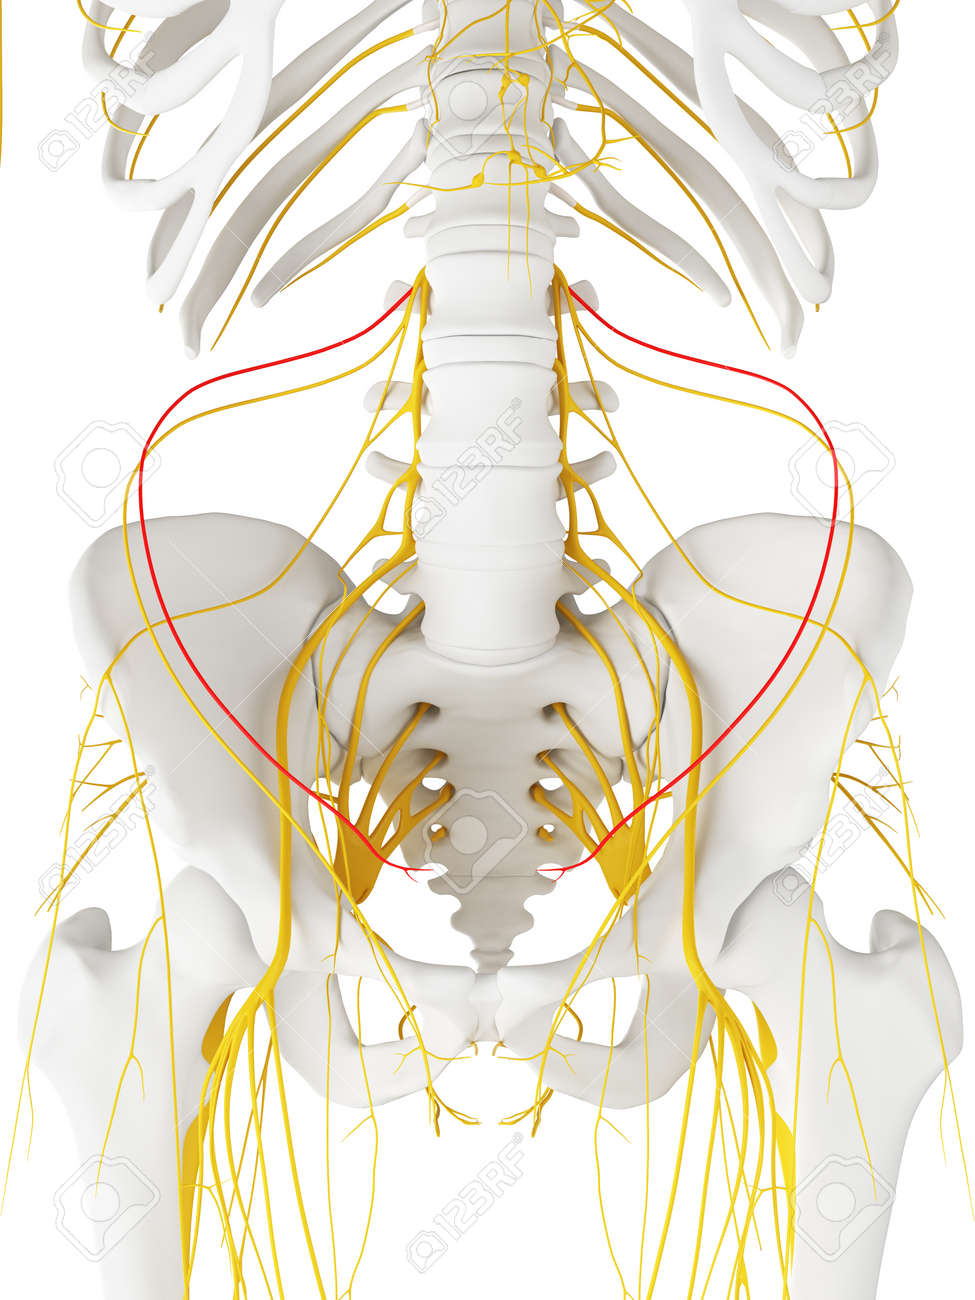 medium resolution of 3d rendered medically accurate illustration of the iliohypogastric nerve stock illustration 87650828